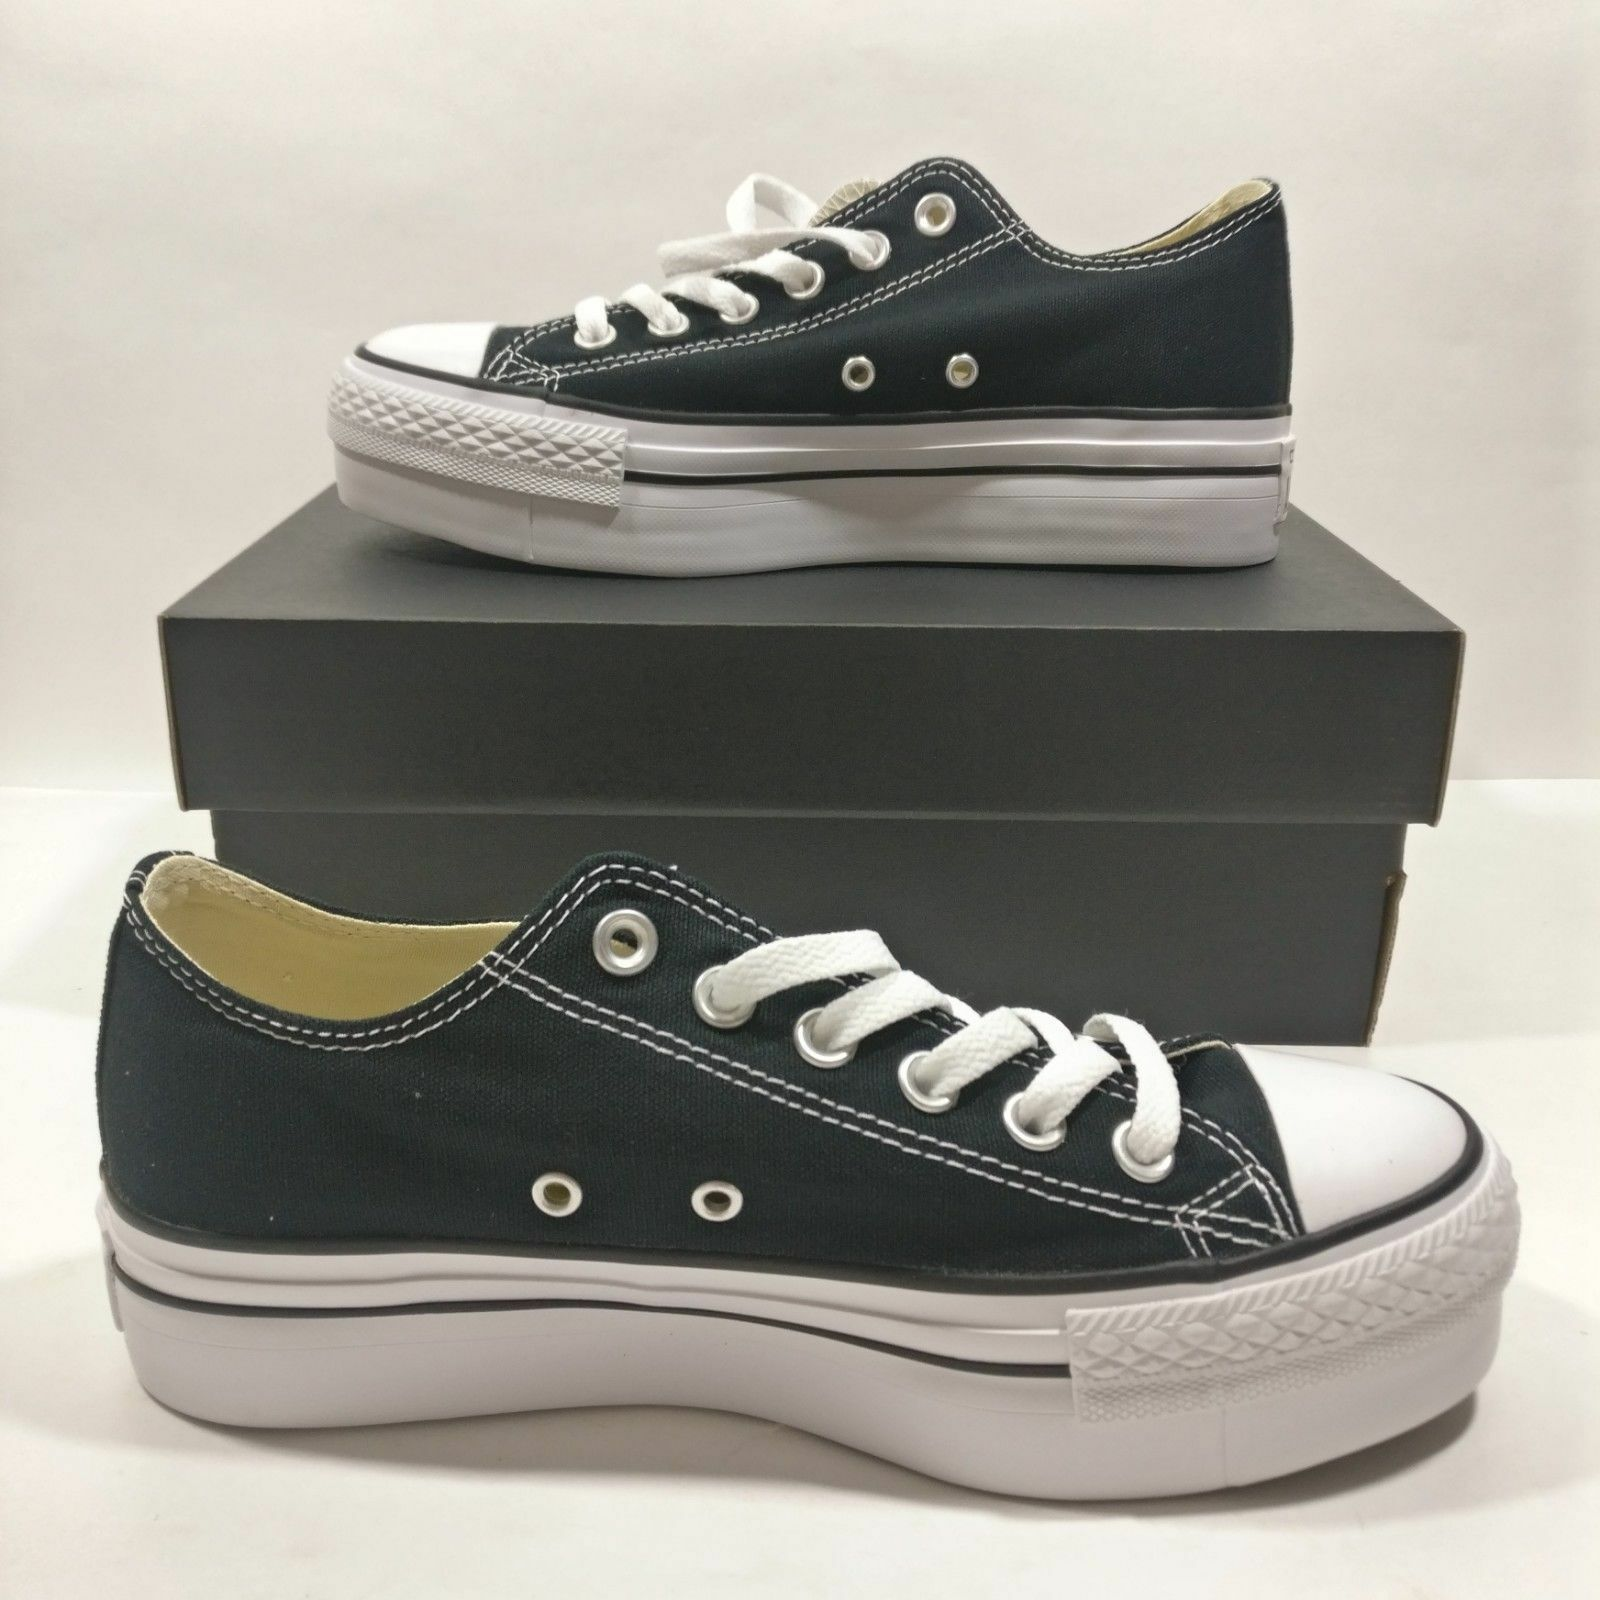 Womens Converse Chuck Taylor Taylor Taylor All Star Low Black Platform Ox shoes Multi Size 0eade4